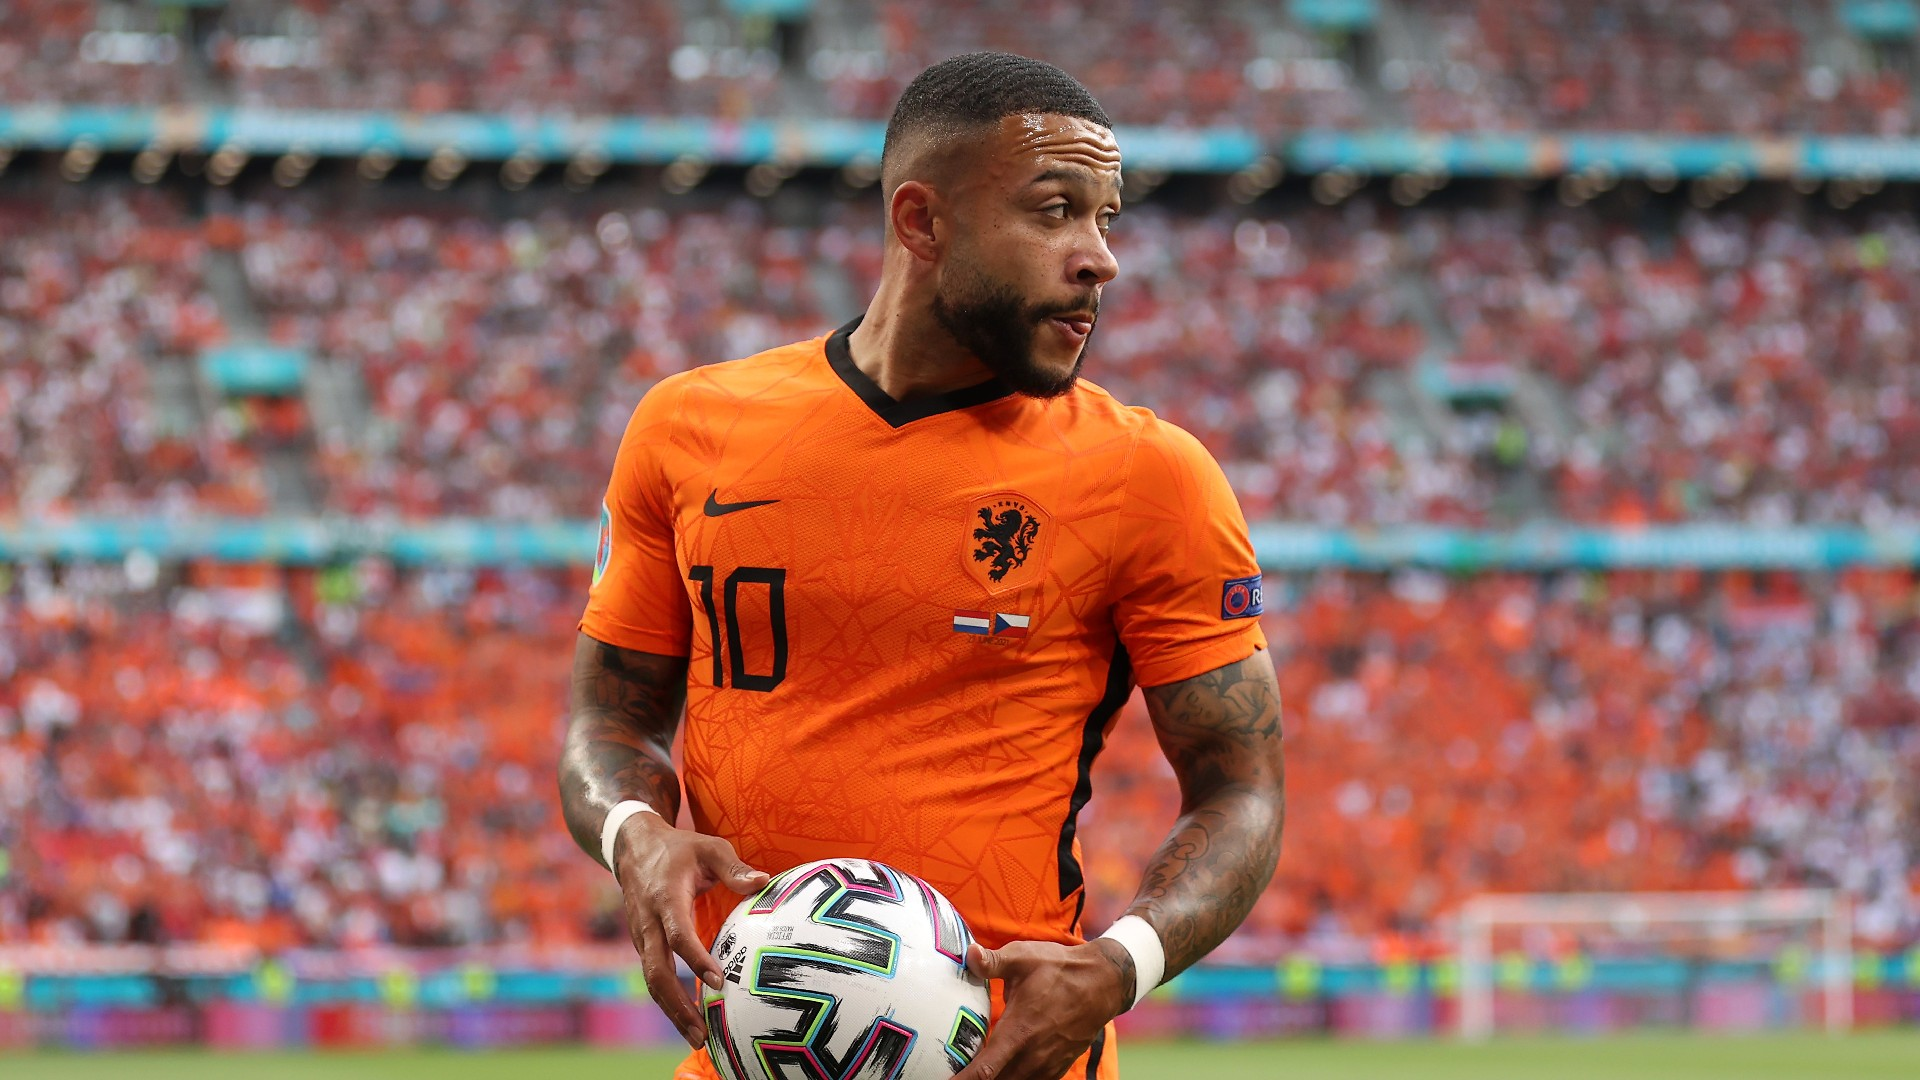 'The three of us are compatible' - Depay confident he can play with Messi and Aguero at Barcelona